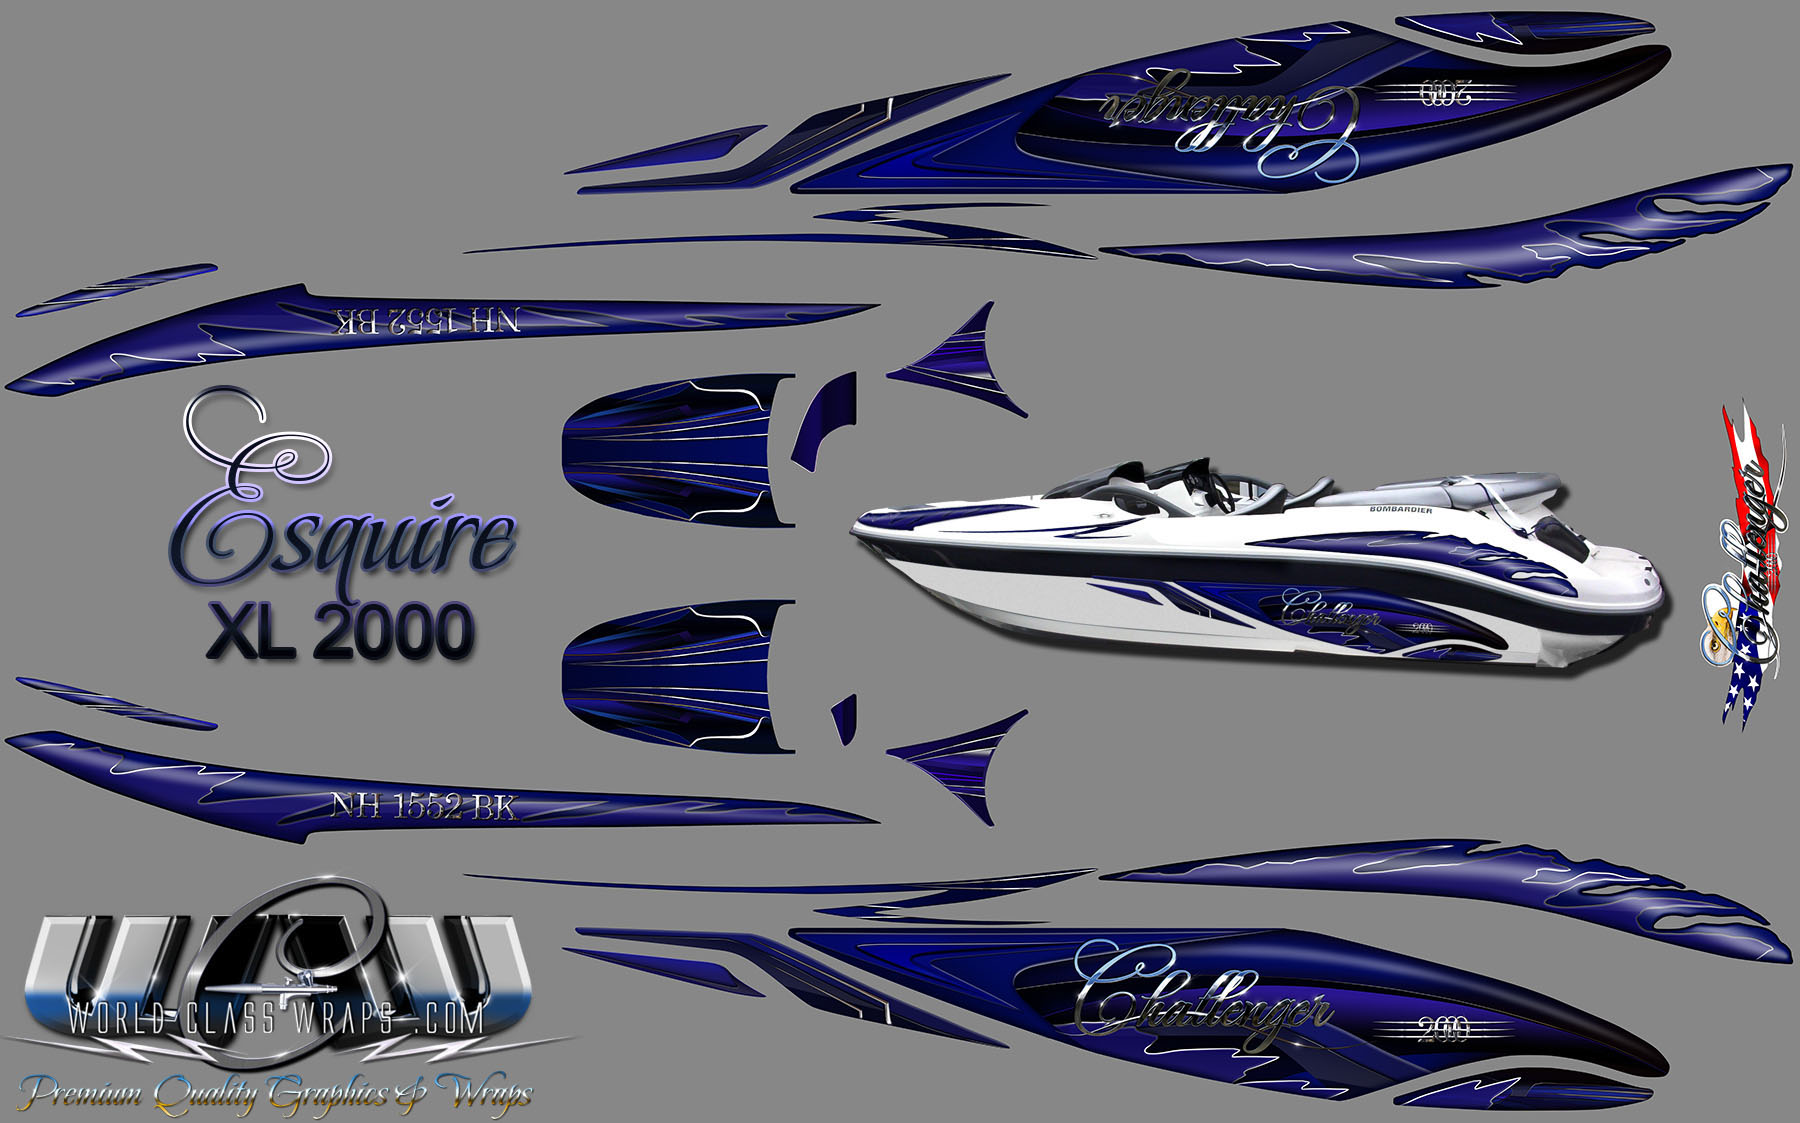 emejing boat graphics designs ideas contemporary interior design - Boat Graphics Designs Ideas